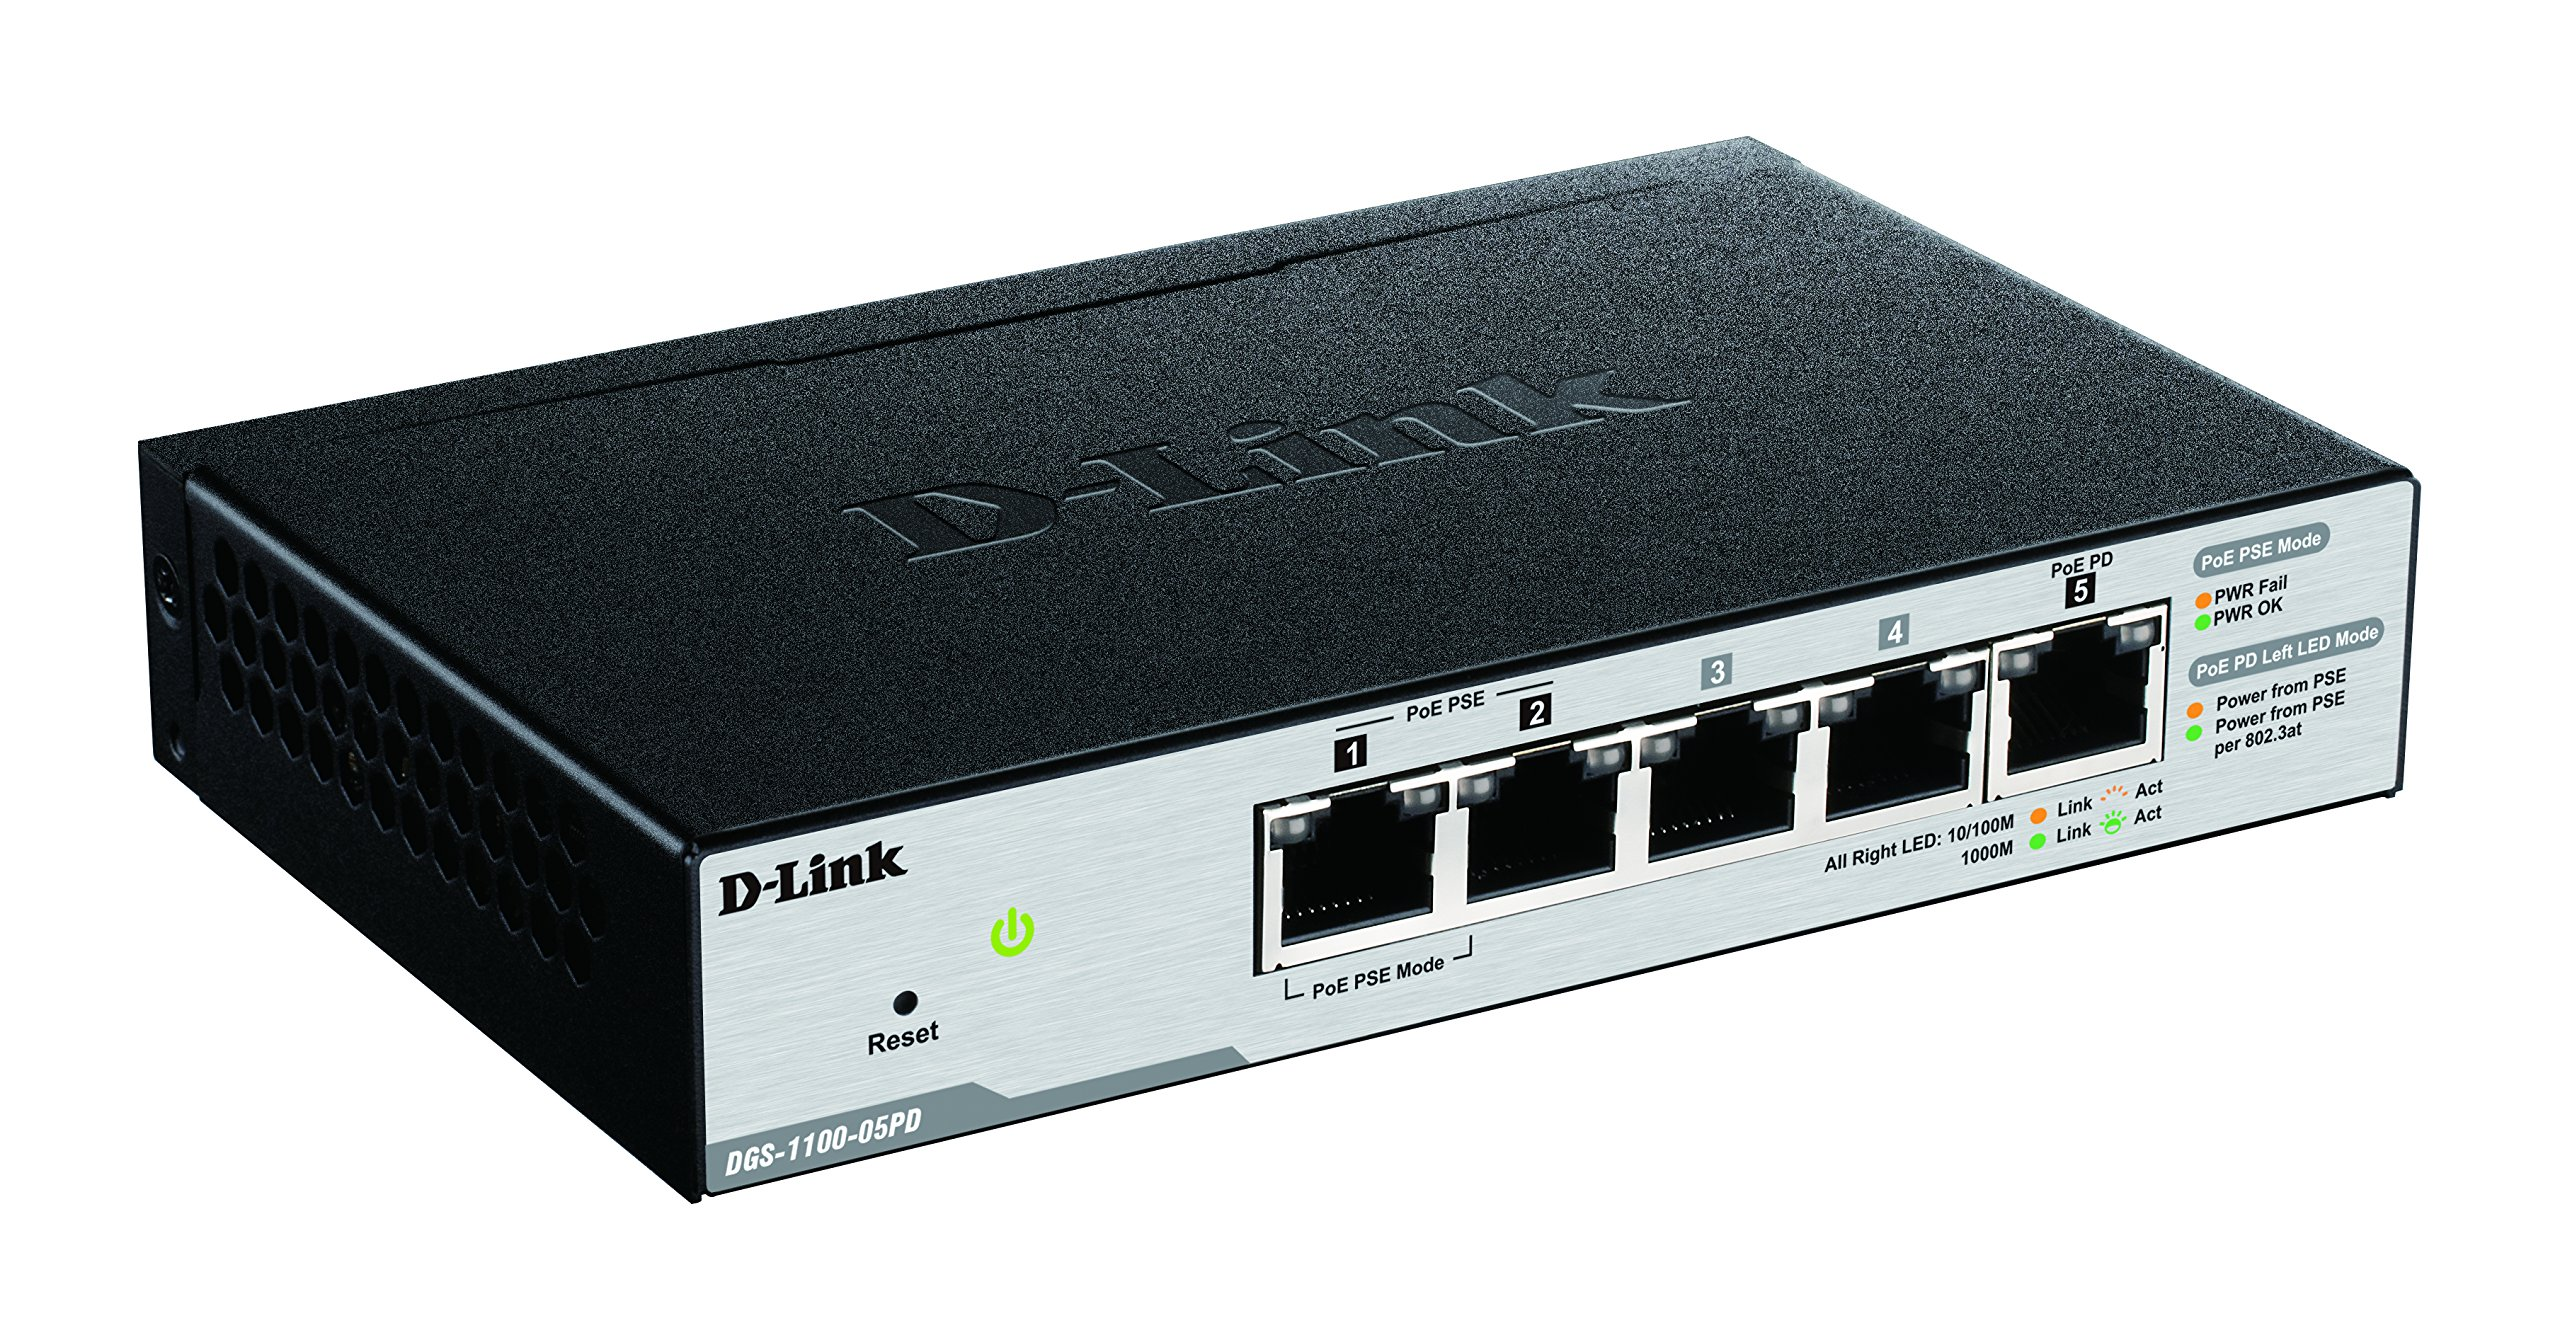 D-Link DGS-1100-05PD Smart Managed PoE-Powered 5-Port Gigabit Switch and PoE Extender by D-Link (Image #2)